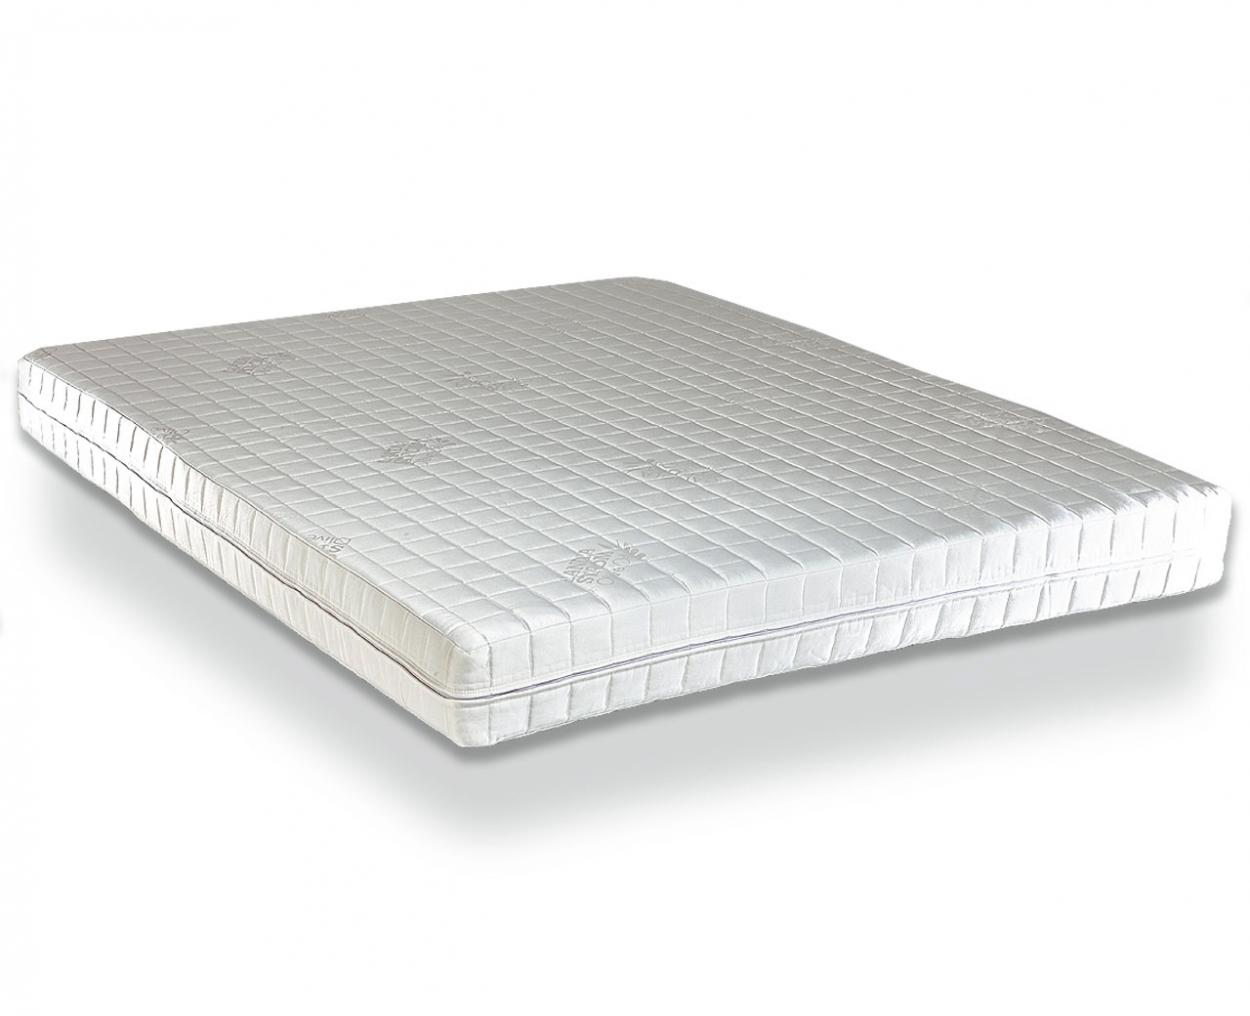 CandiaStrom - Mattress SOUTHERN ESSENCE - NATUREZZA COLLECTION -  General Image